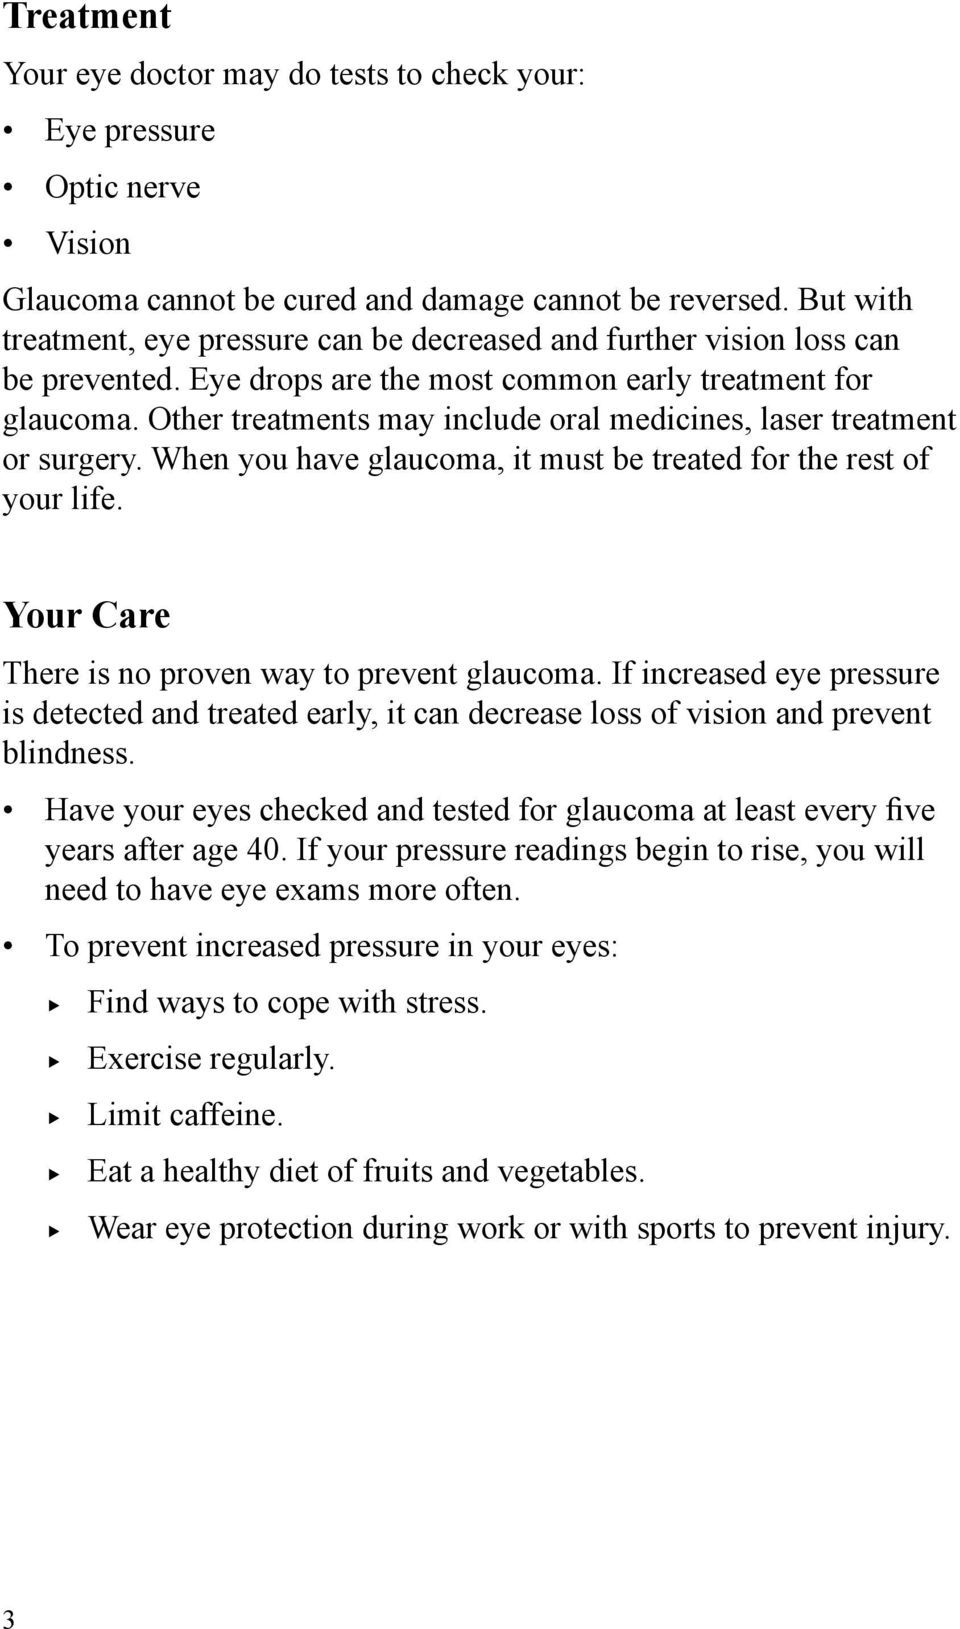 Other treatments may include oral medicines, laser treatment or surgery. When you have glaucoma, it must be treated for the rest of your life. Your Care There is no proven way to prevent glaucoma.